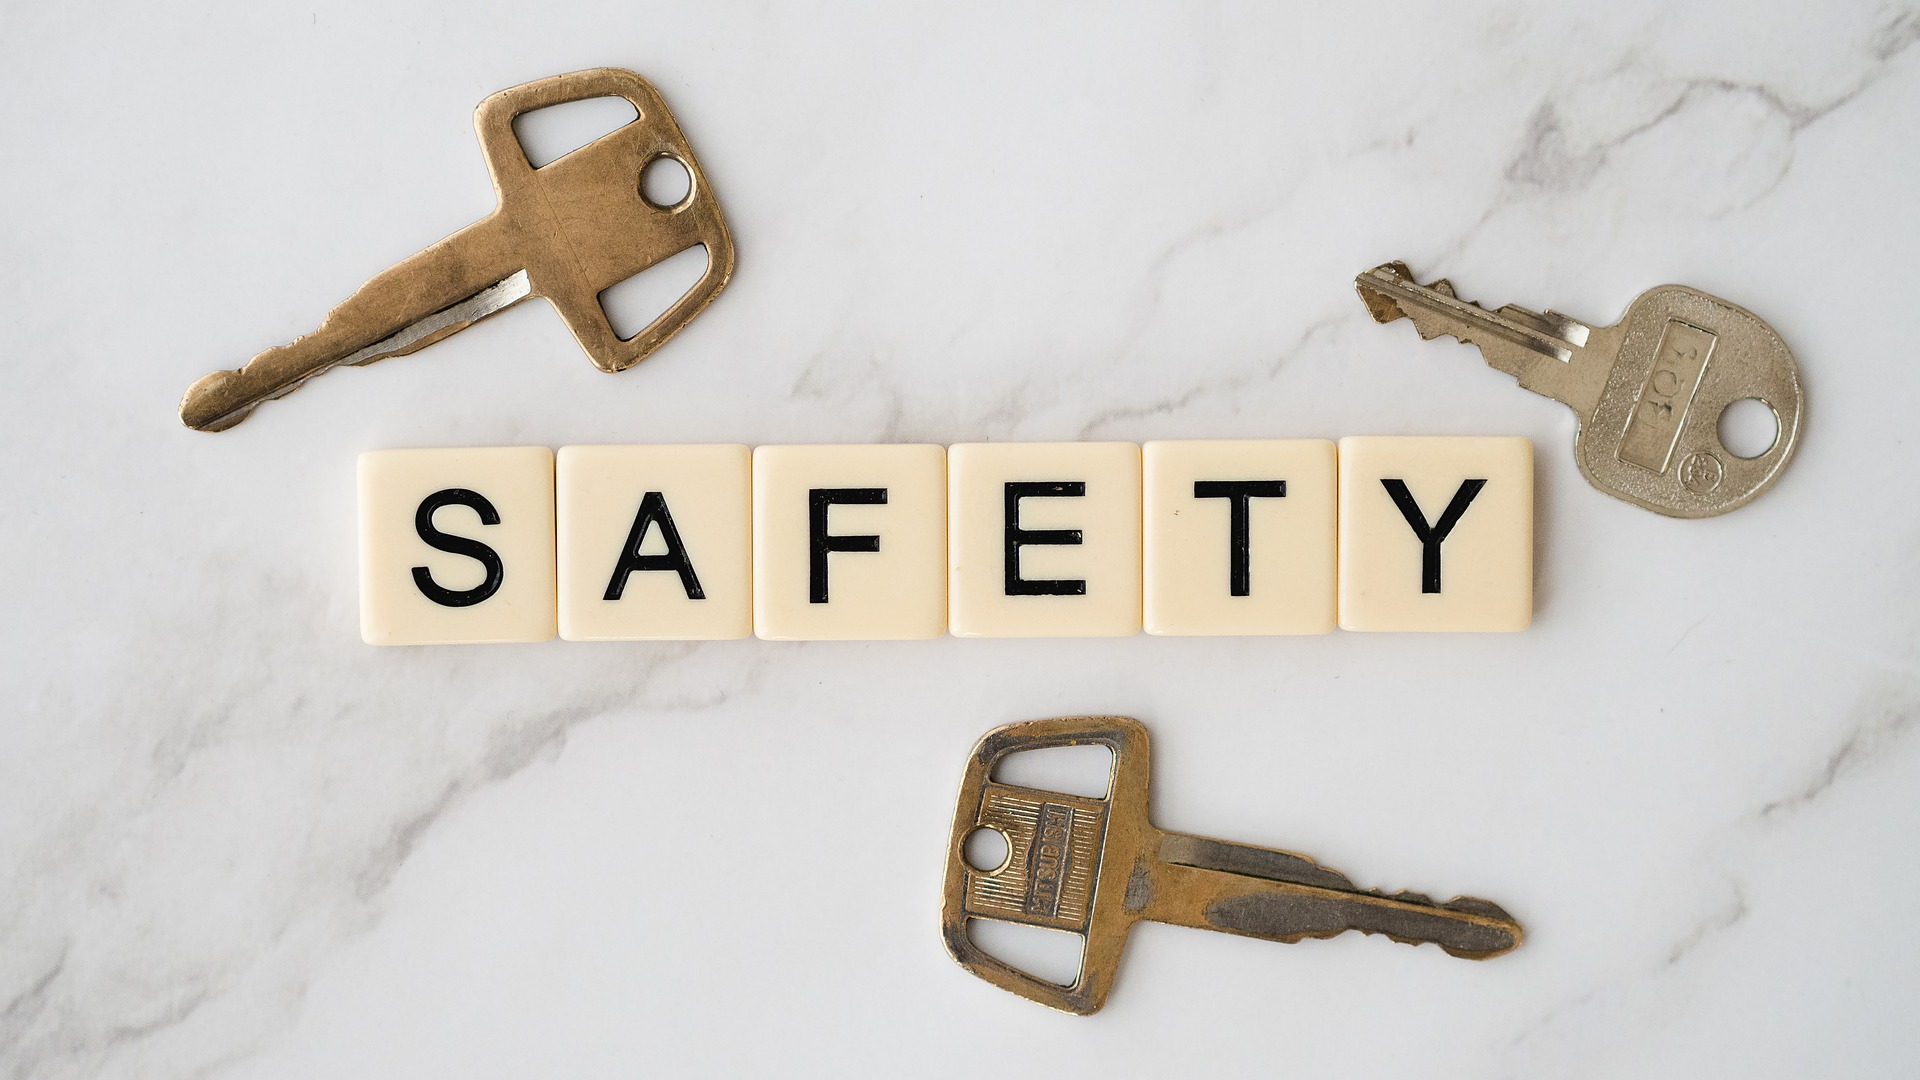 The Key to Safety is Situational Awareness